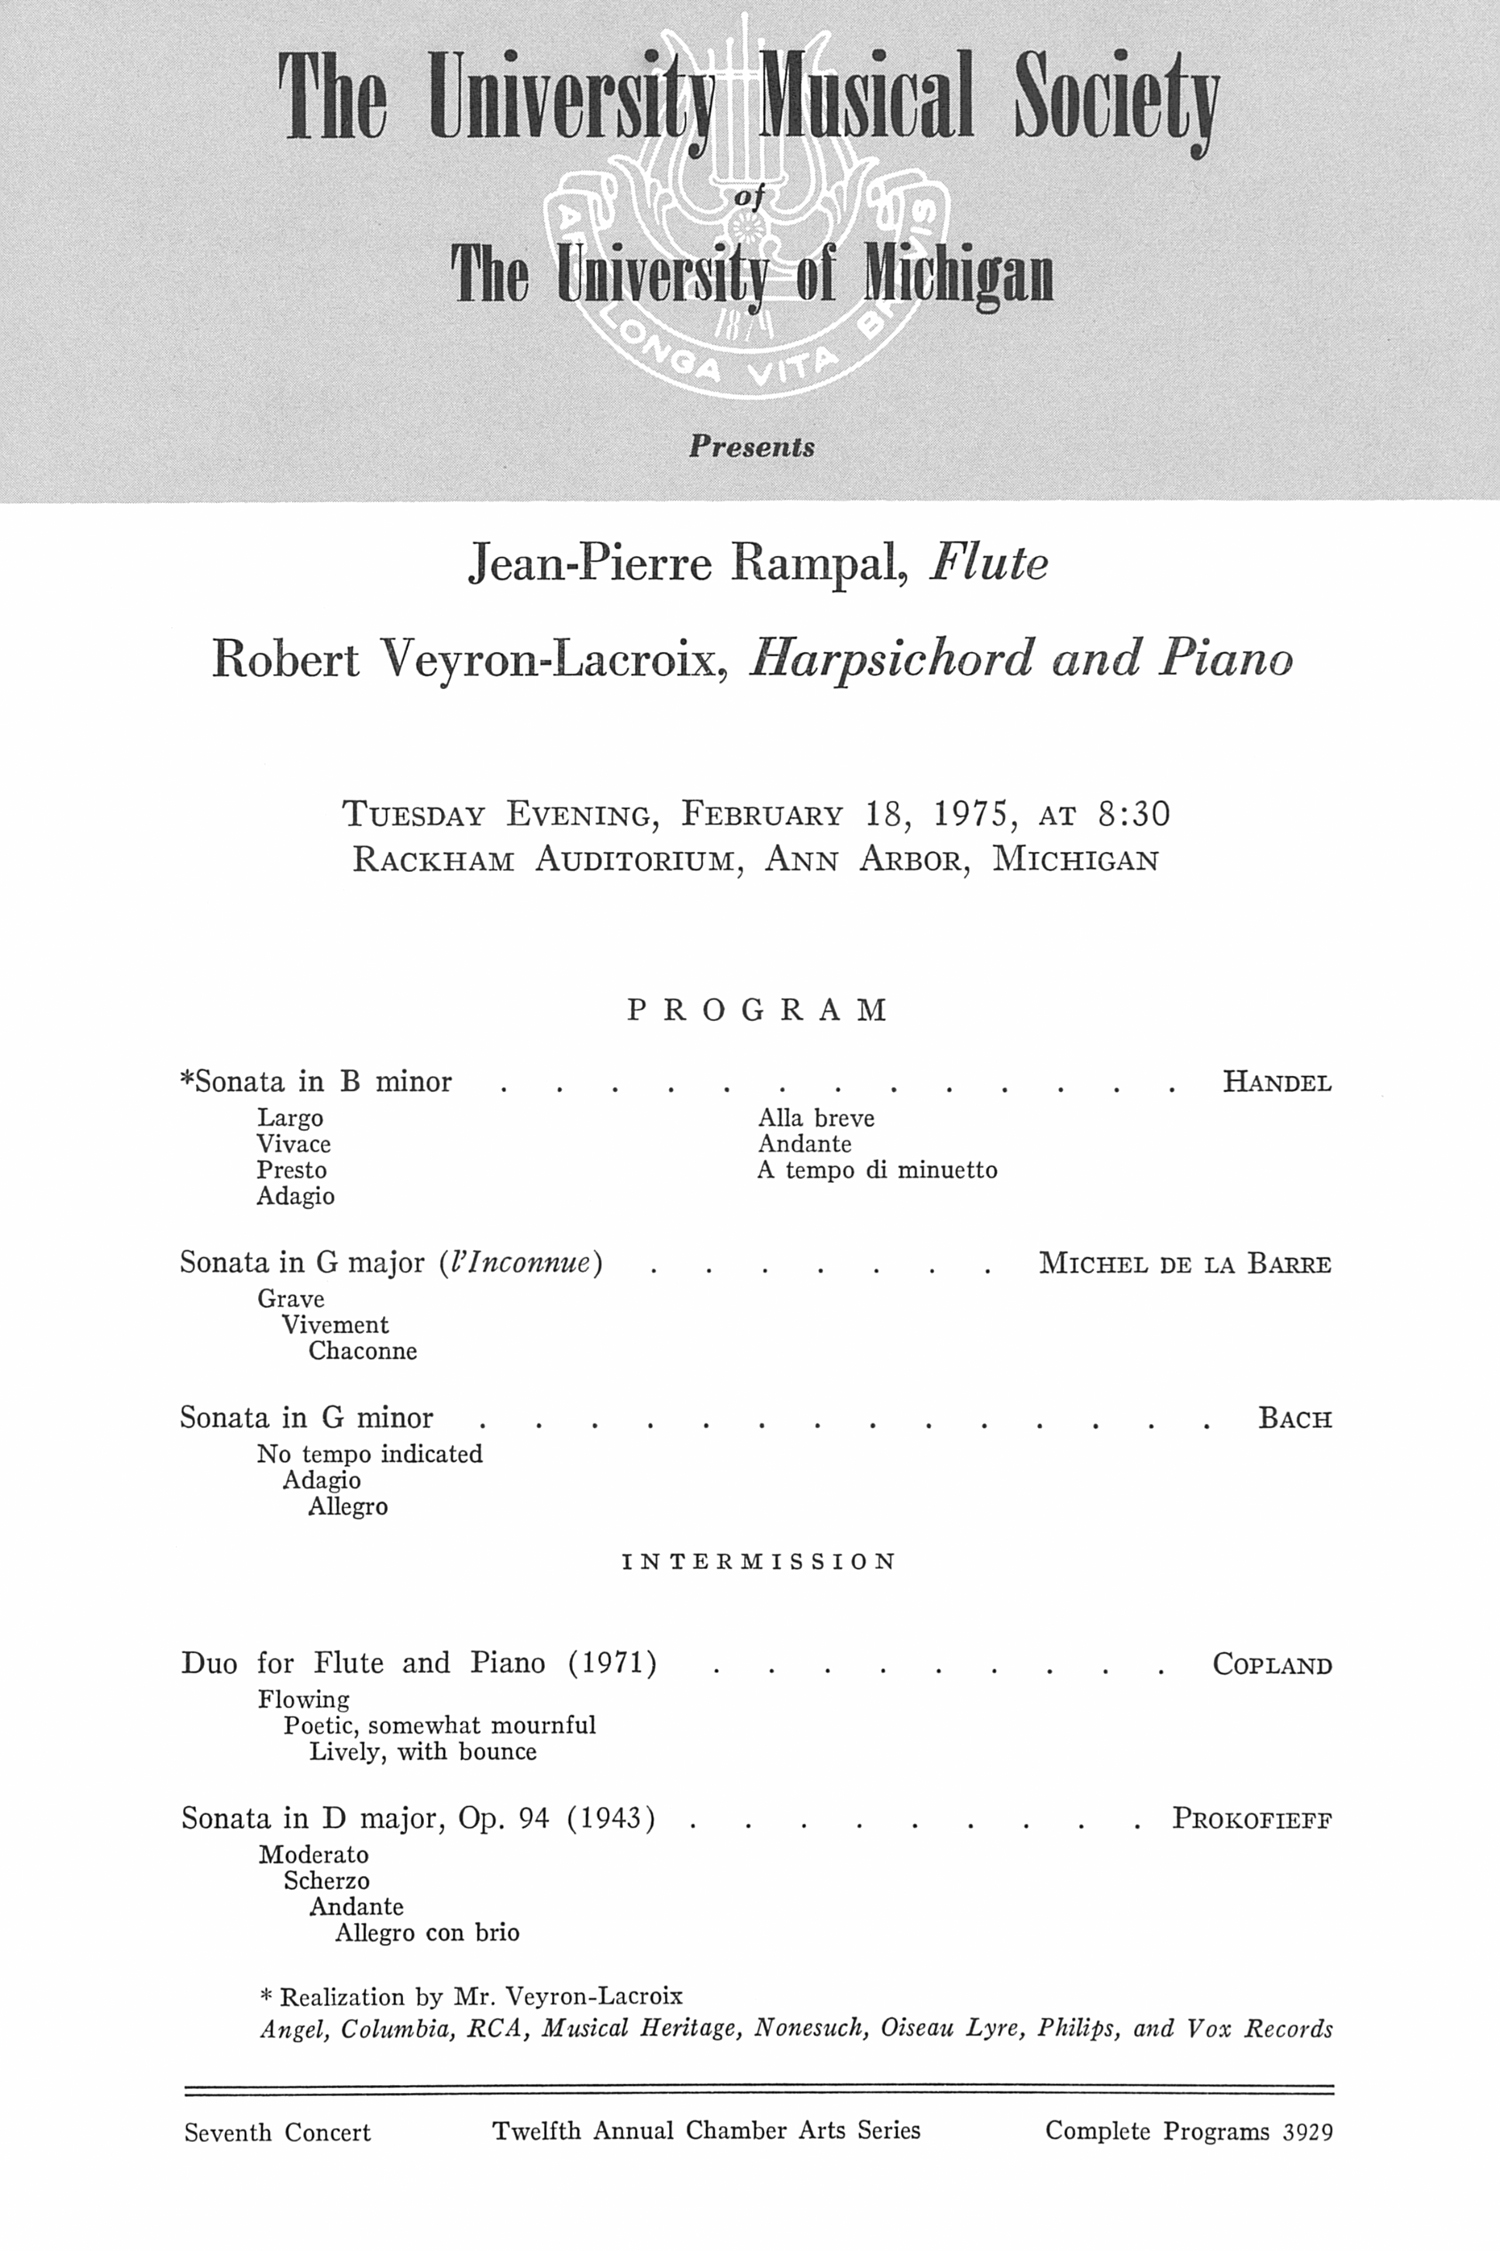 UMS Concert Program, February 18, 1975: Jean-pierre Rampal --  image